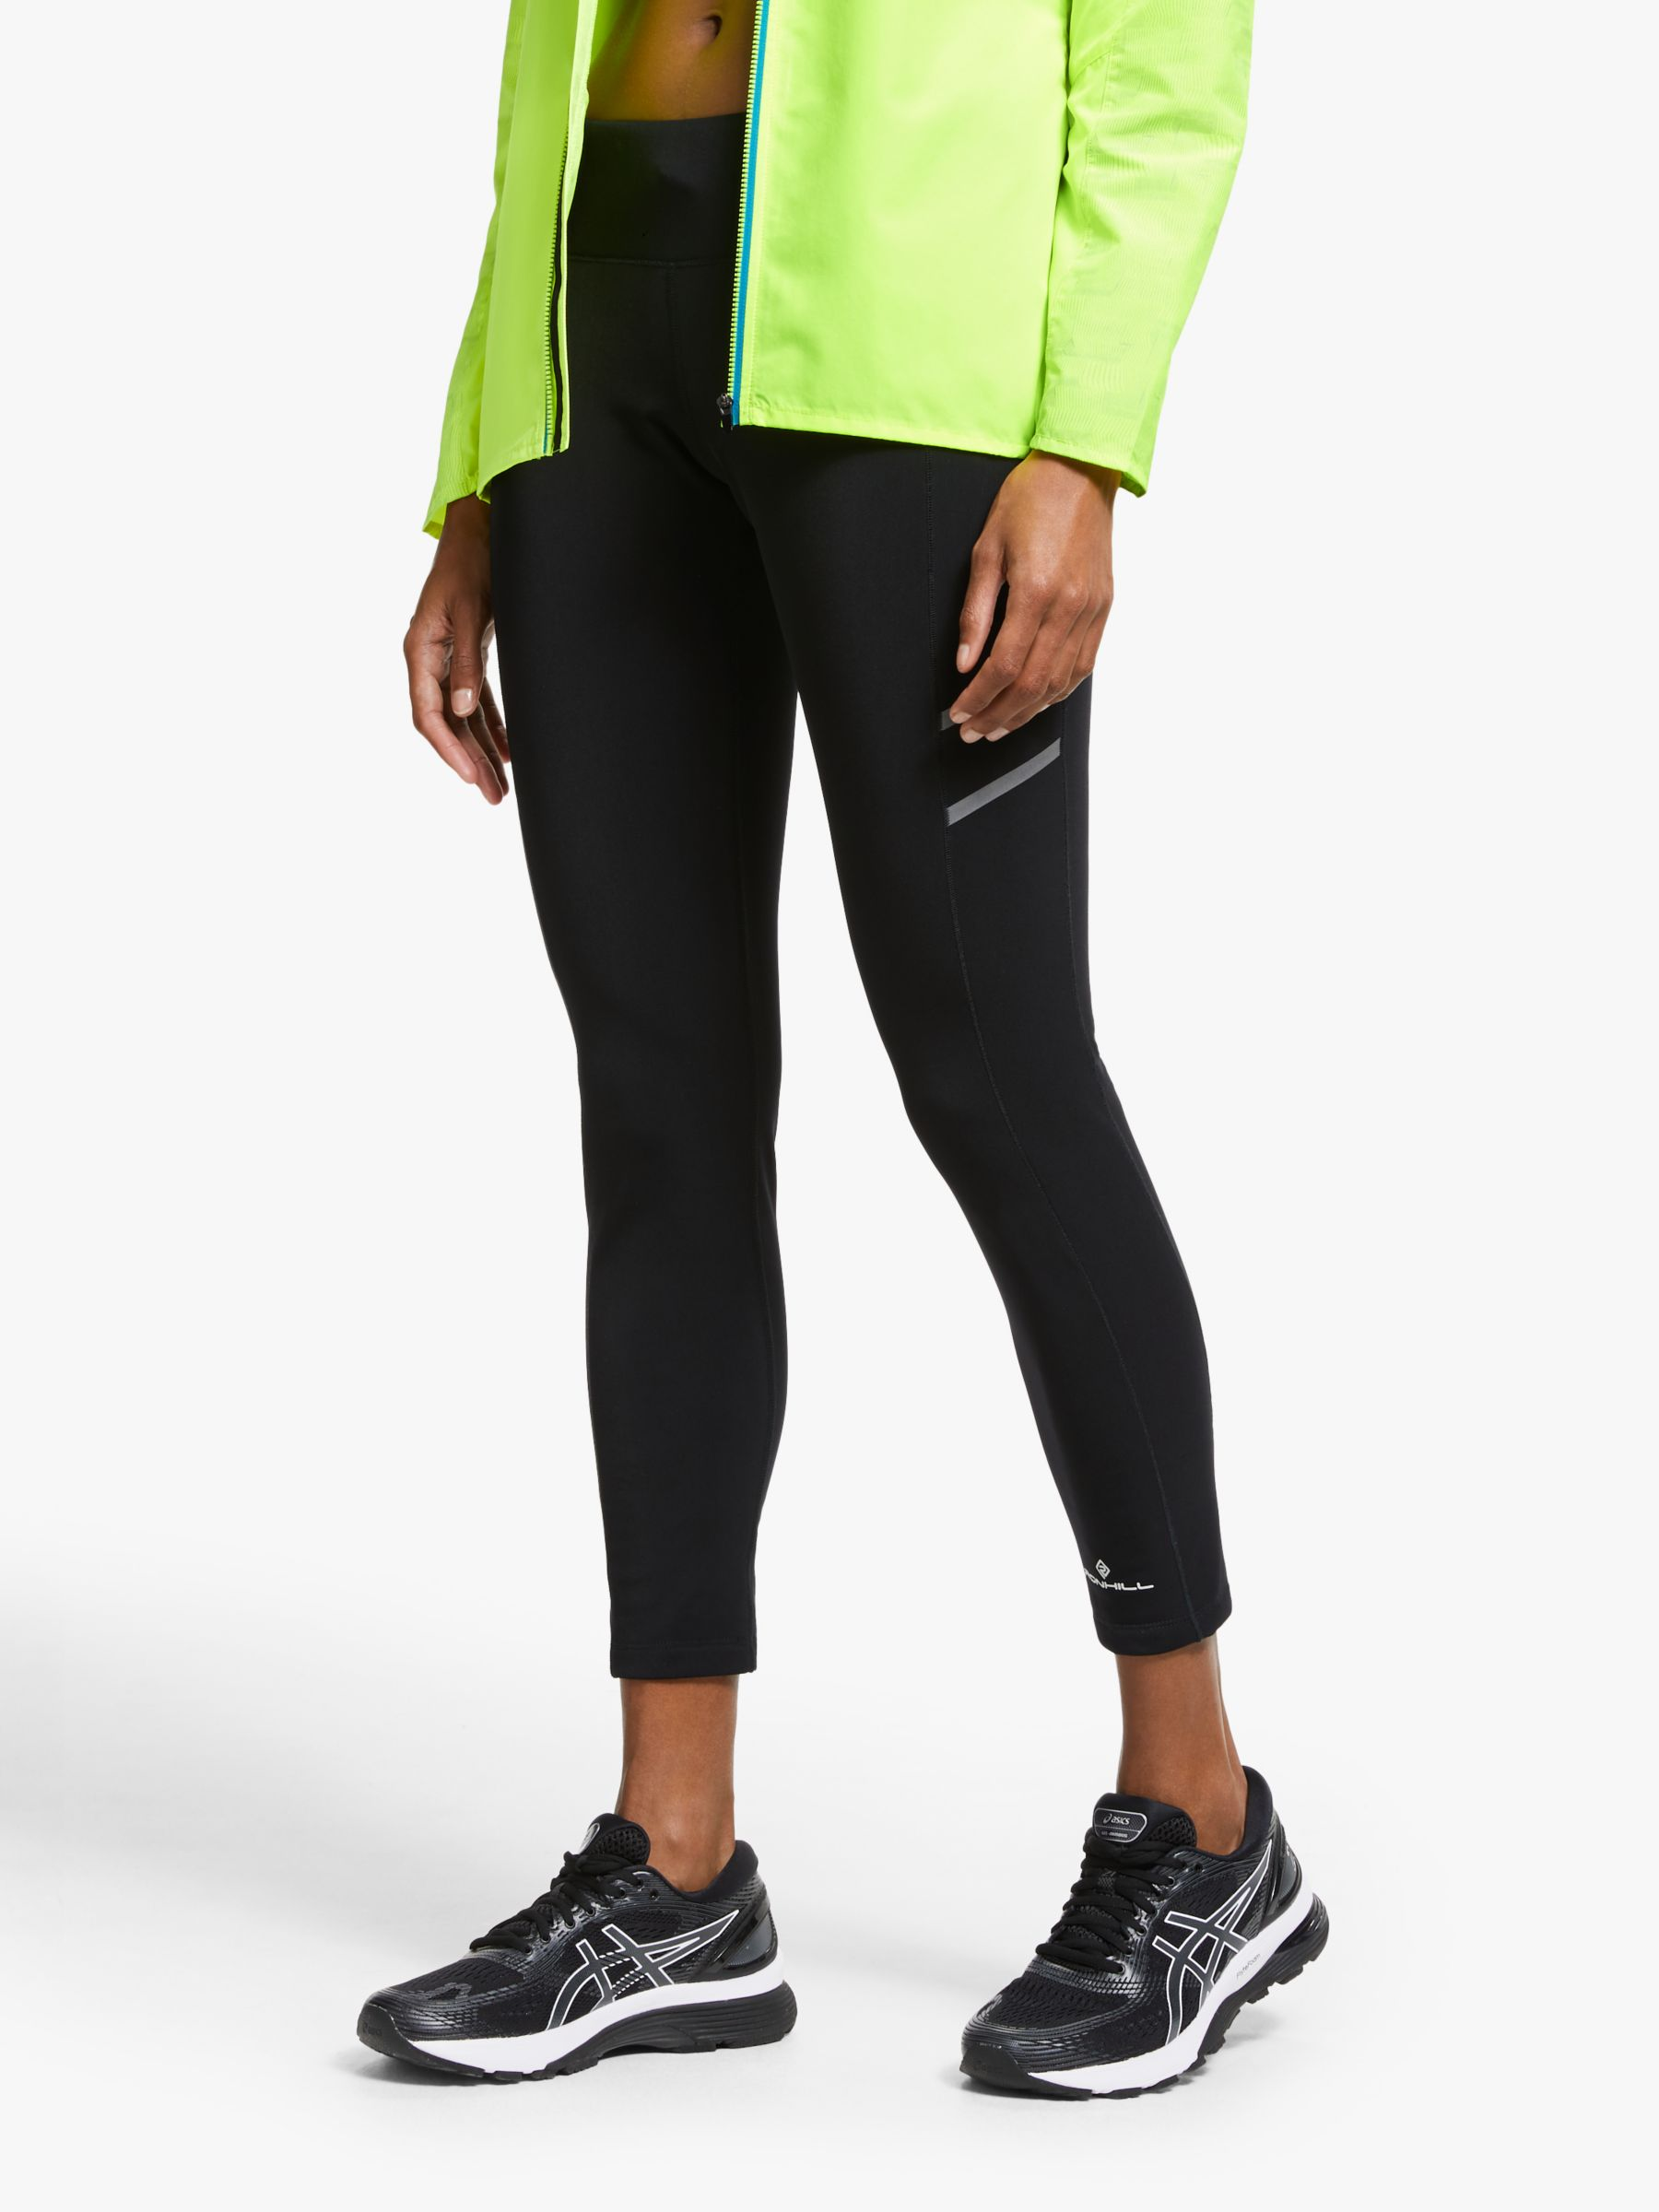 Ronhill Ronhill Winter Shield Running Leggings, All Black